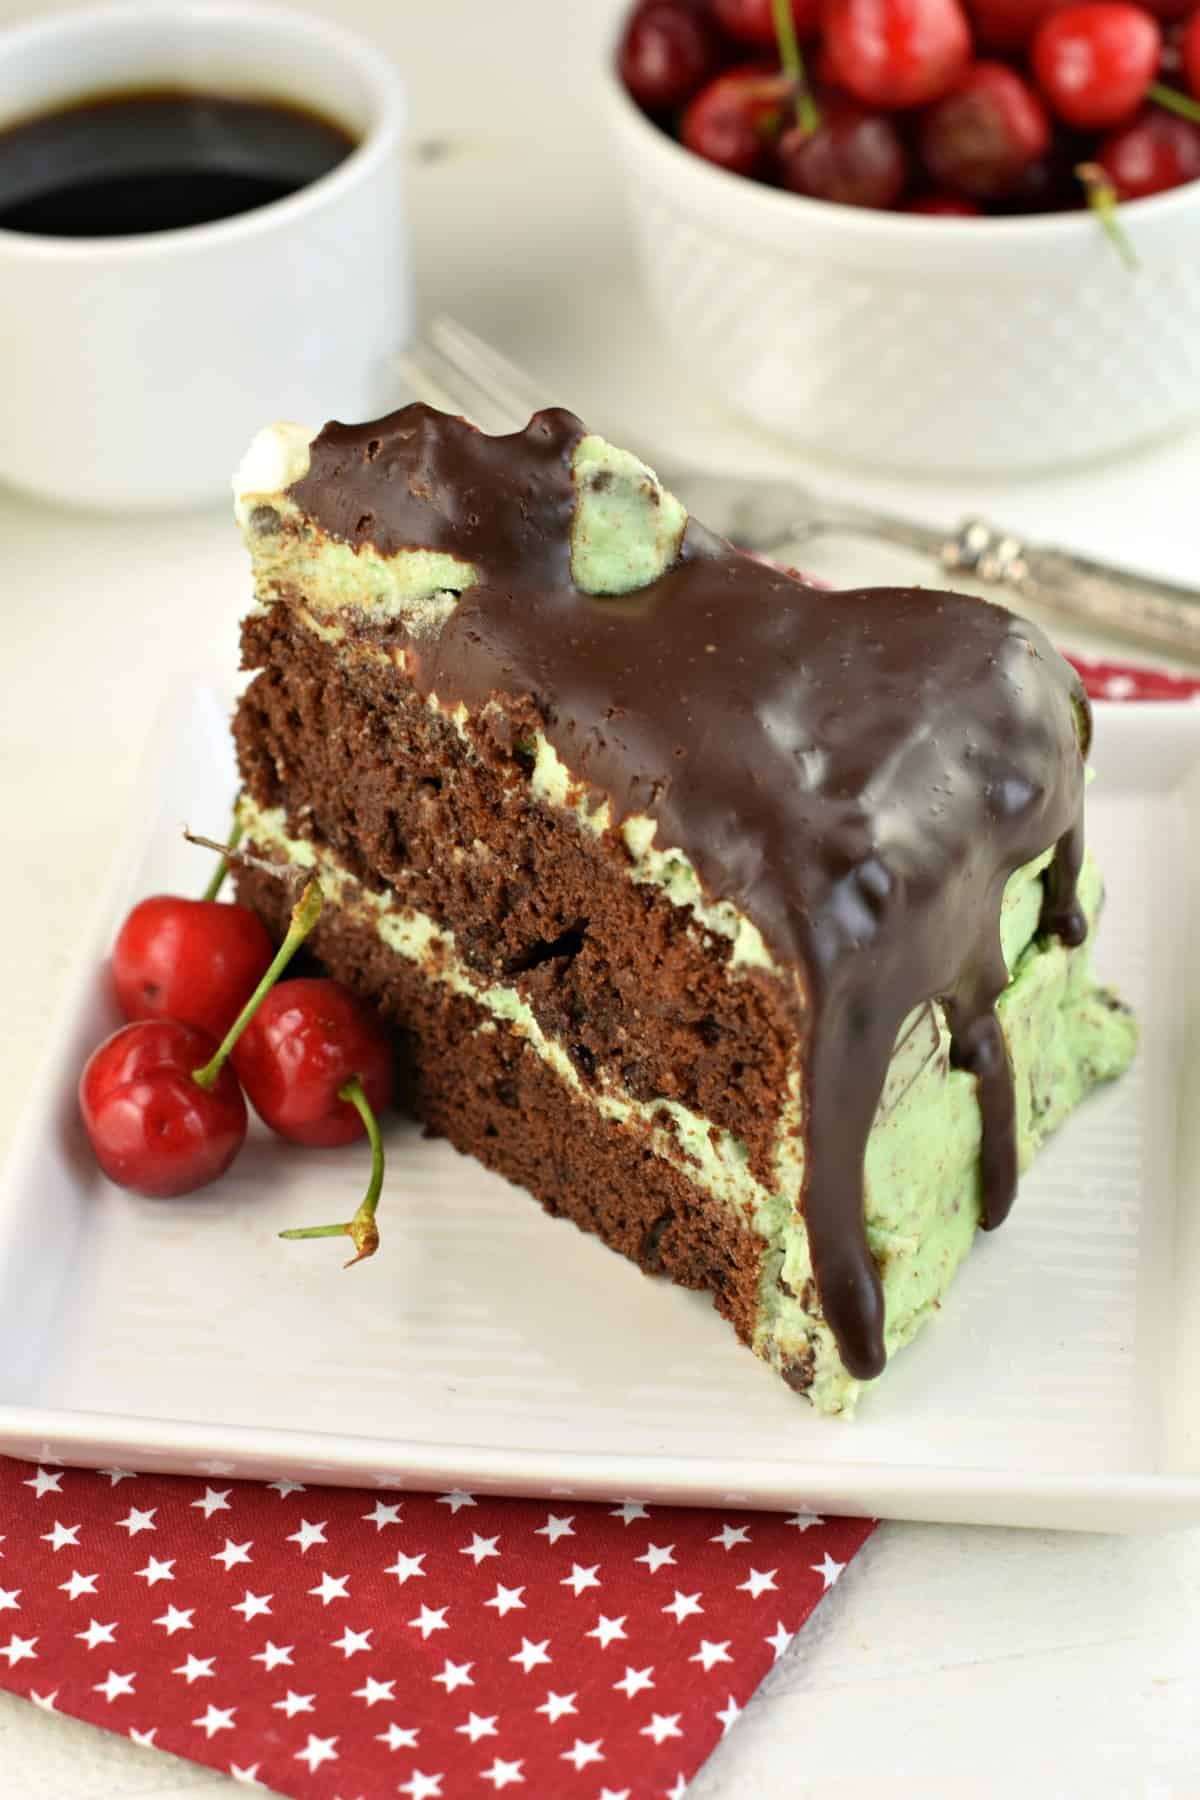 Thick slice of chocolate layer cake with mint chocolate chip frosting tinted green and covered in chocolate ganache. Served on a white square dessert plate with fresh cherries.